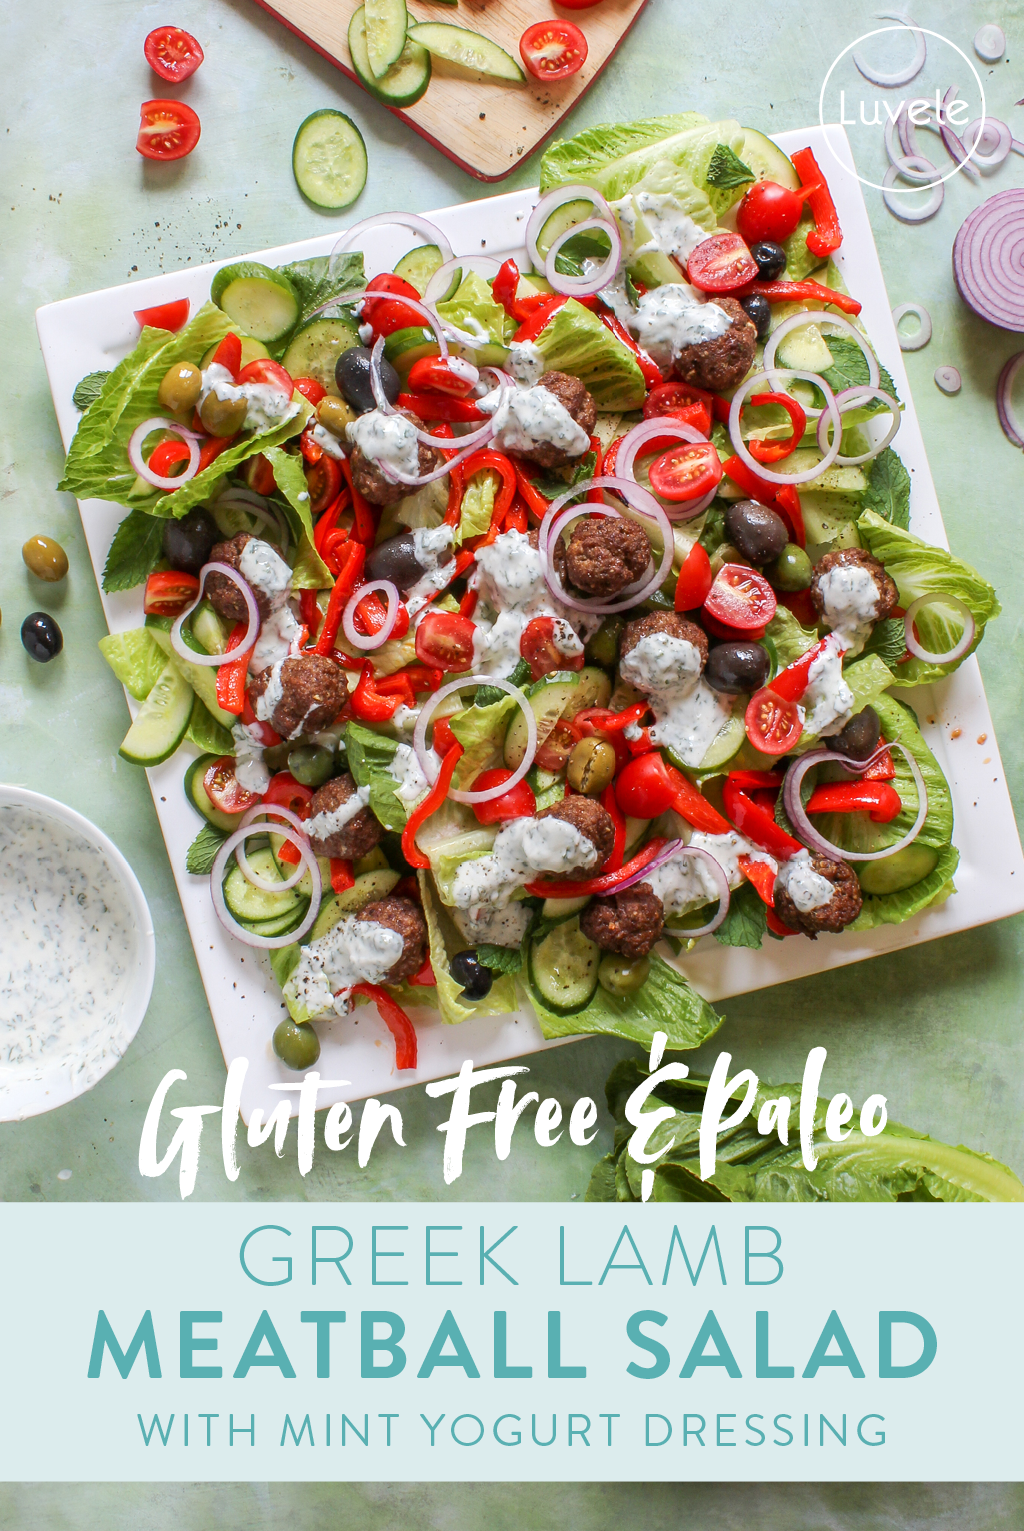 Greek lamb meatball salad with mint yogurt dressing